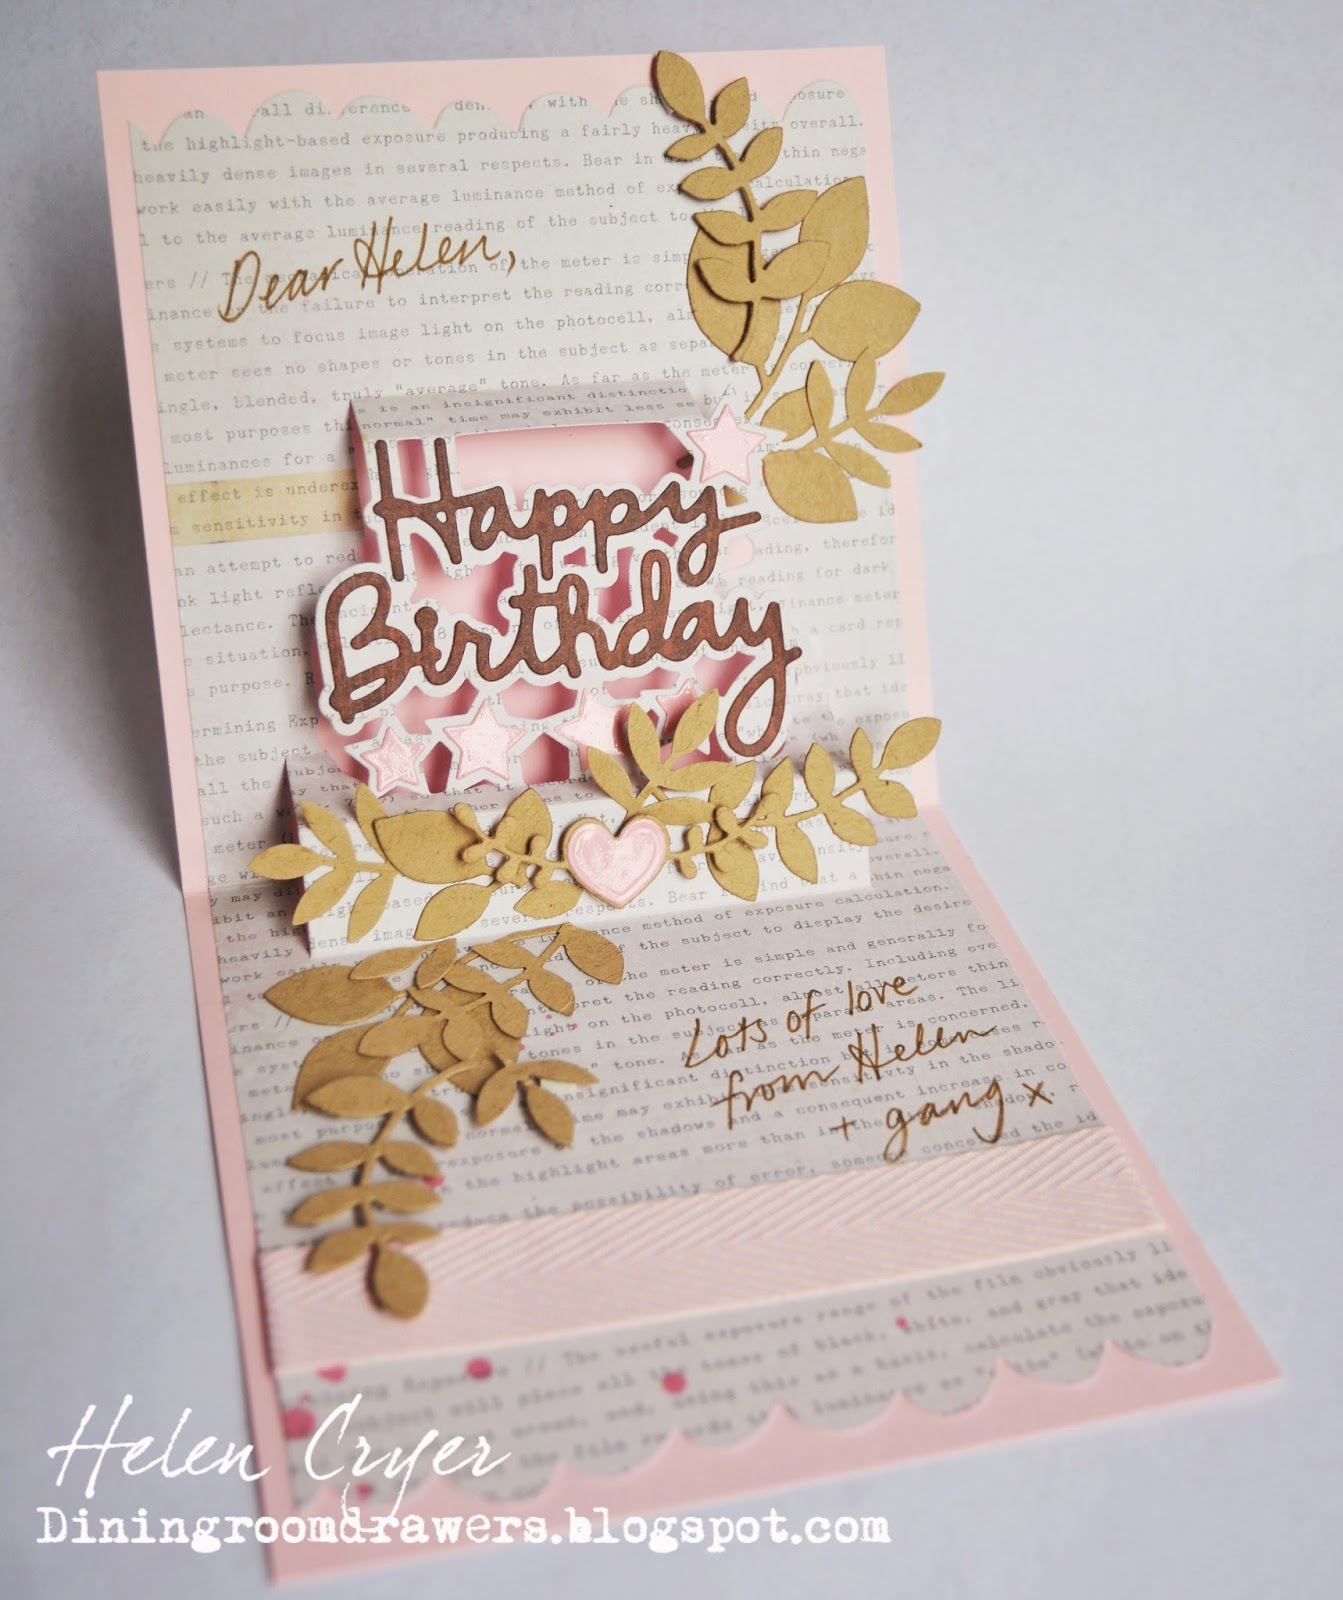 The Dining Room Drawers: Leafy Happy Birthday Pop It Ups Card